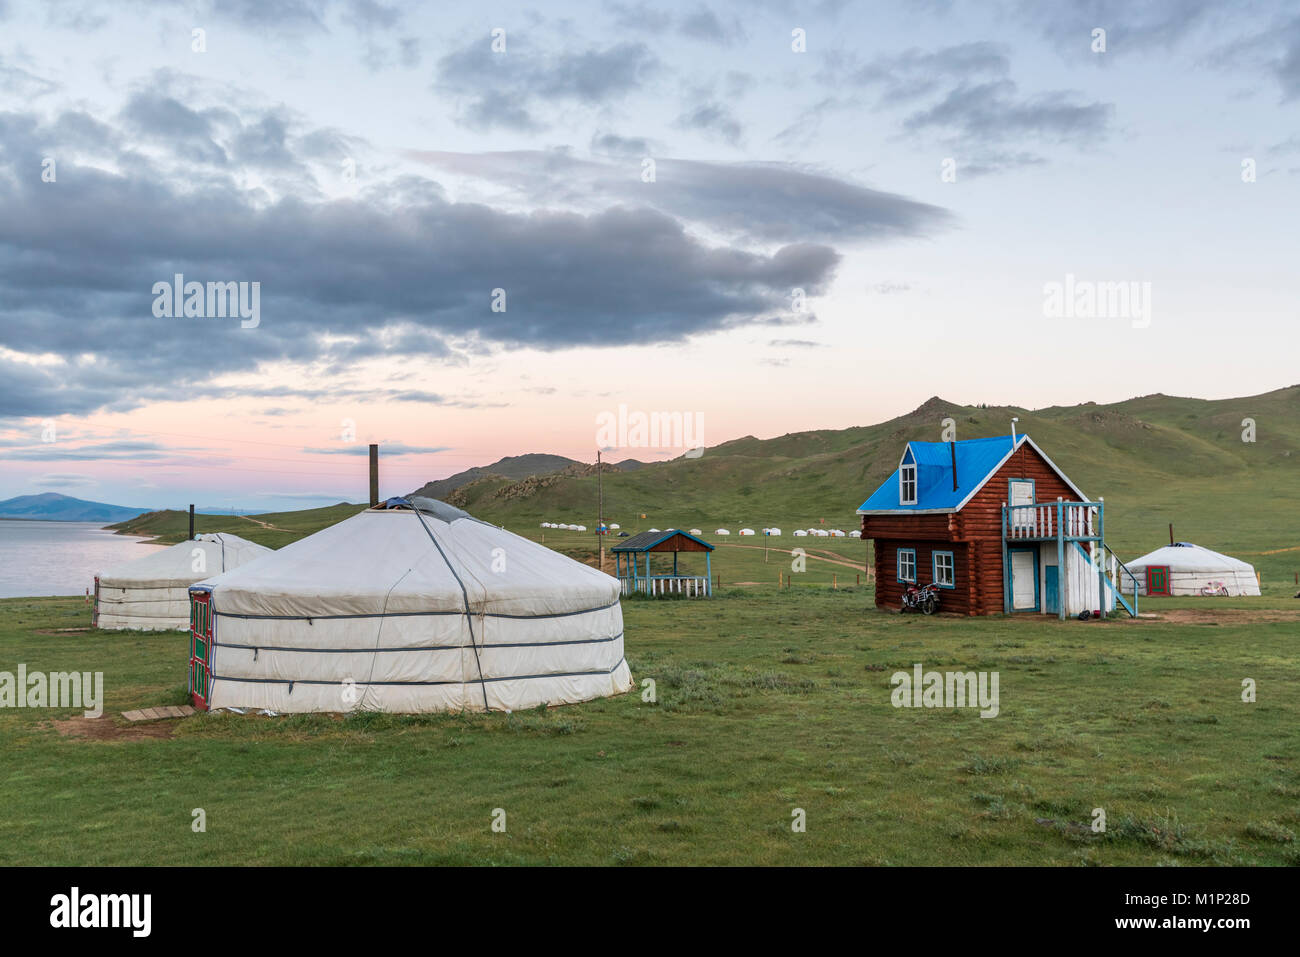 Wooden house and gers on the shores of White Lake, Tariat district, North Hangay province, Mongolia, Central Asia, - Stock Image